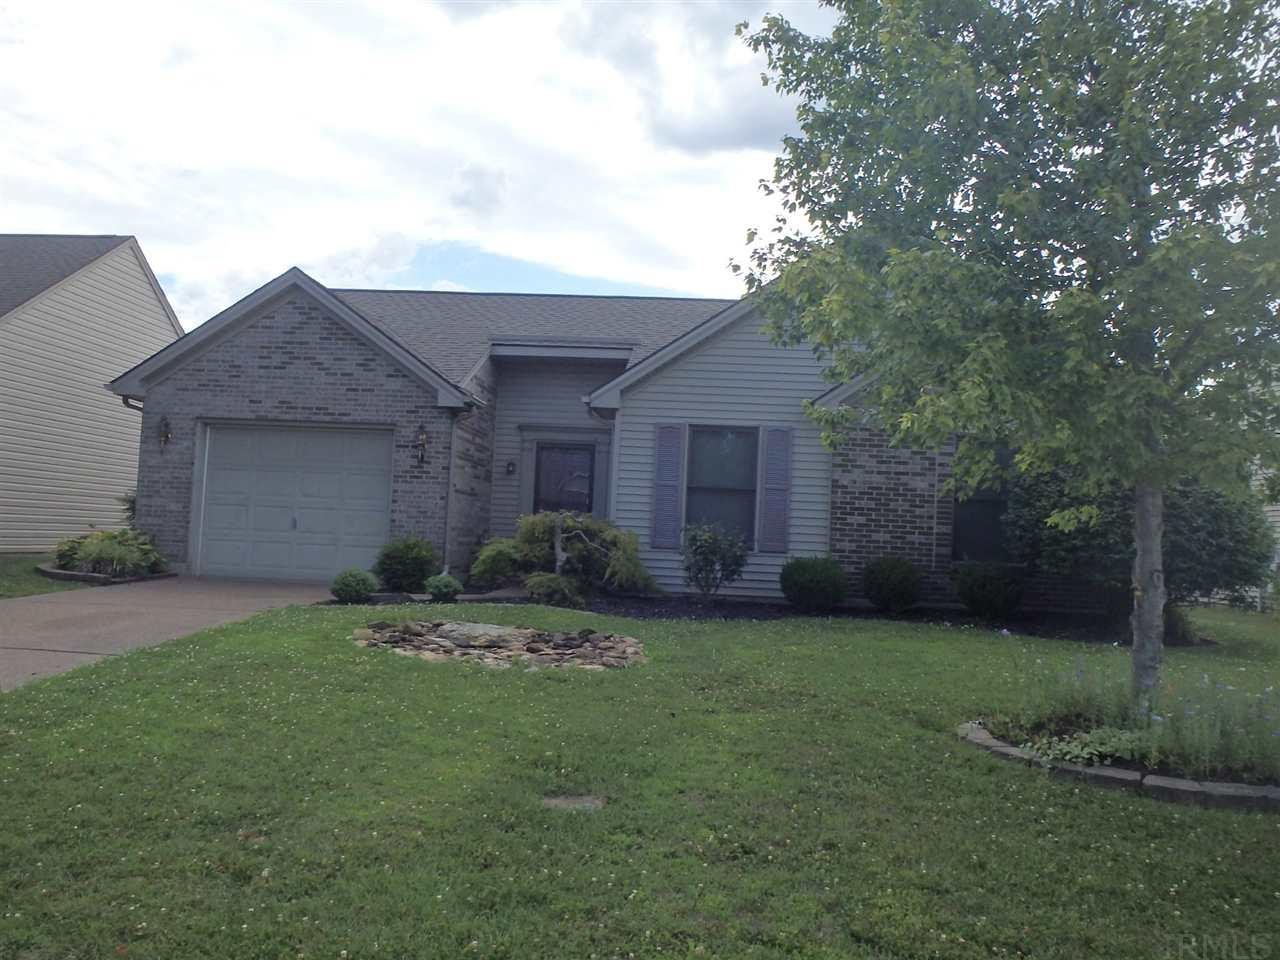 3208 Park Ridge Dr, Evansville, IN 47715